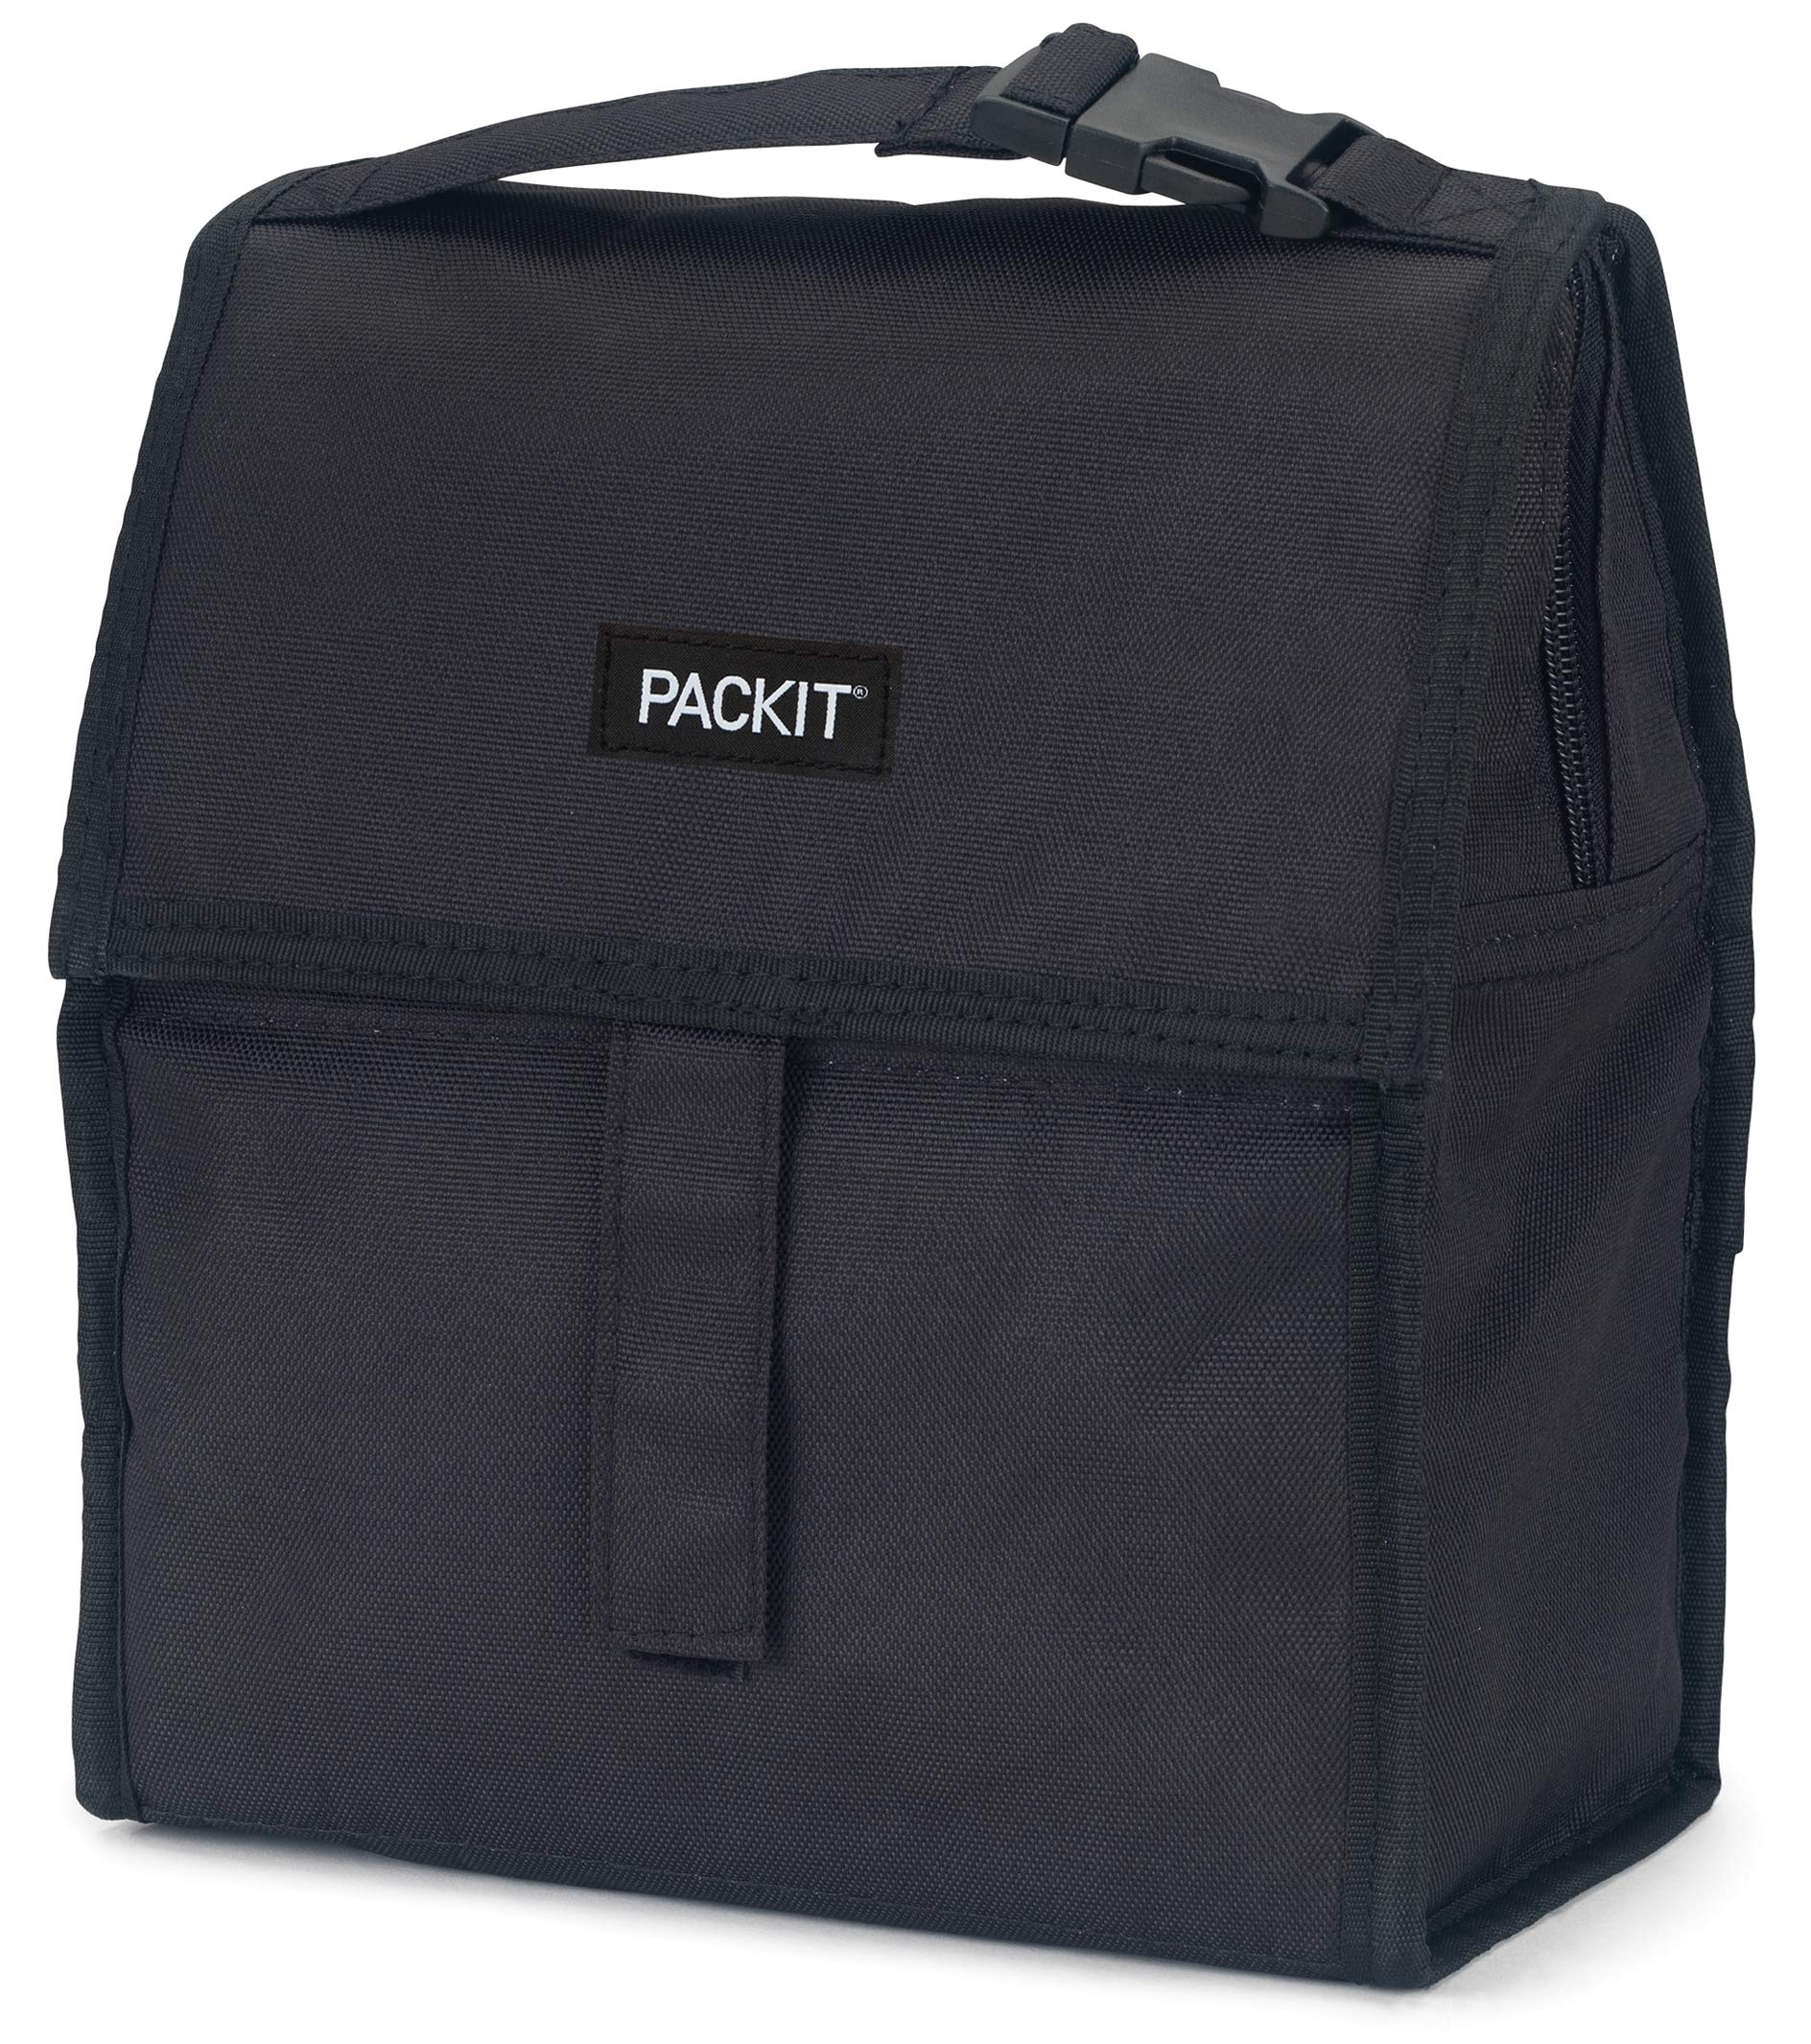 PackIt Freezable Lunch Bag with Zip Closure, Black by PackIt